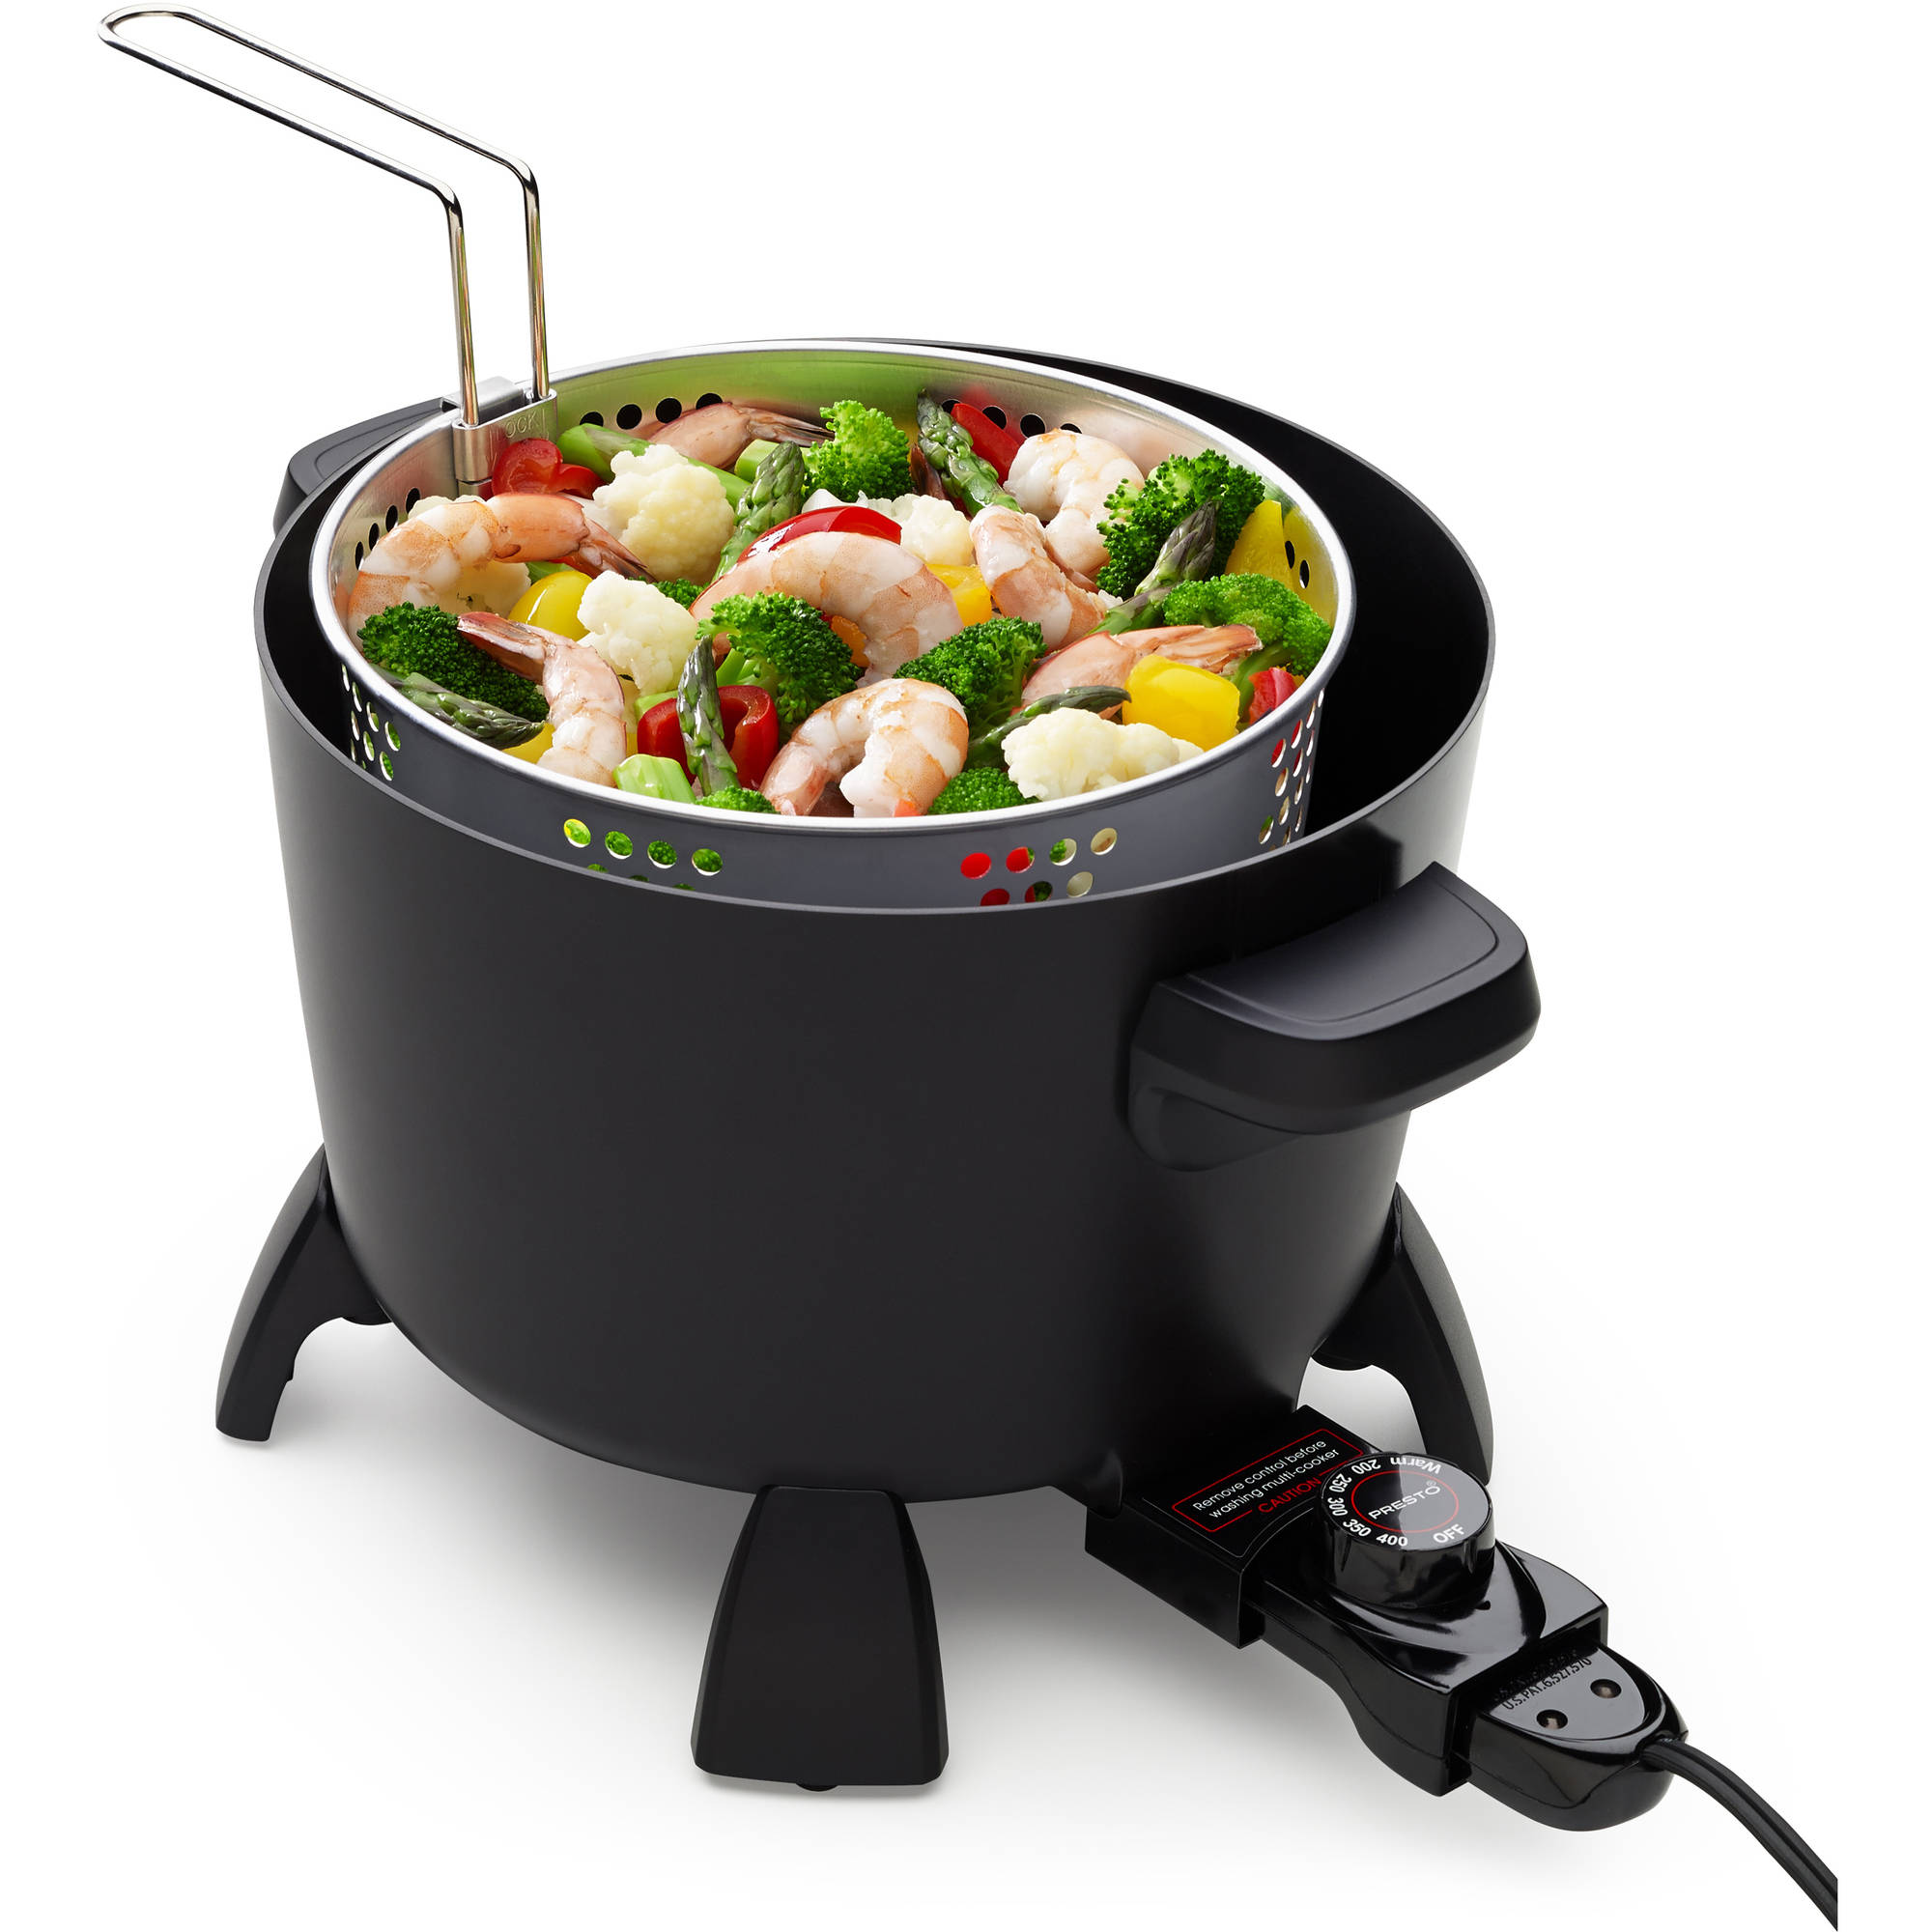 Beautiful Presto Big Kettle™ Multi Cooker/steamer   Walmart.com